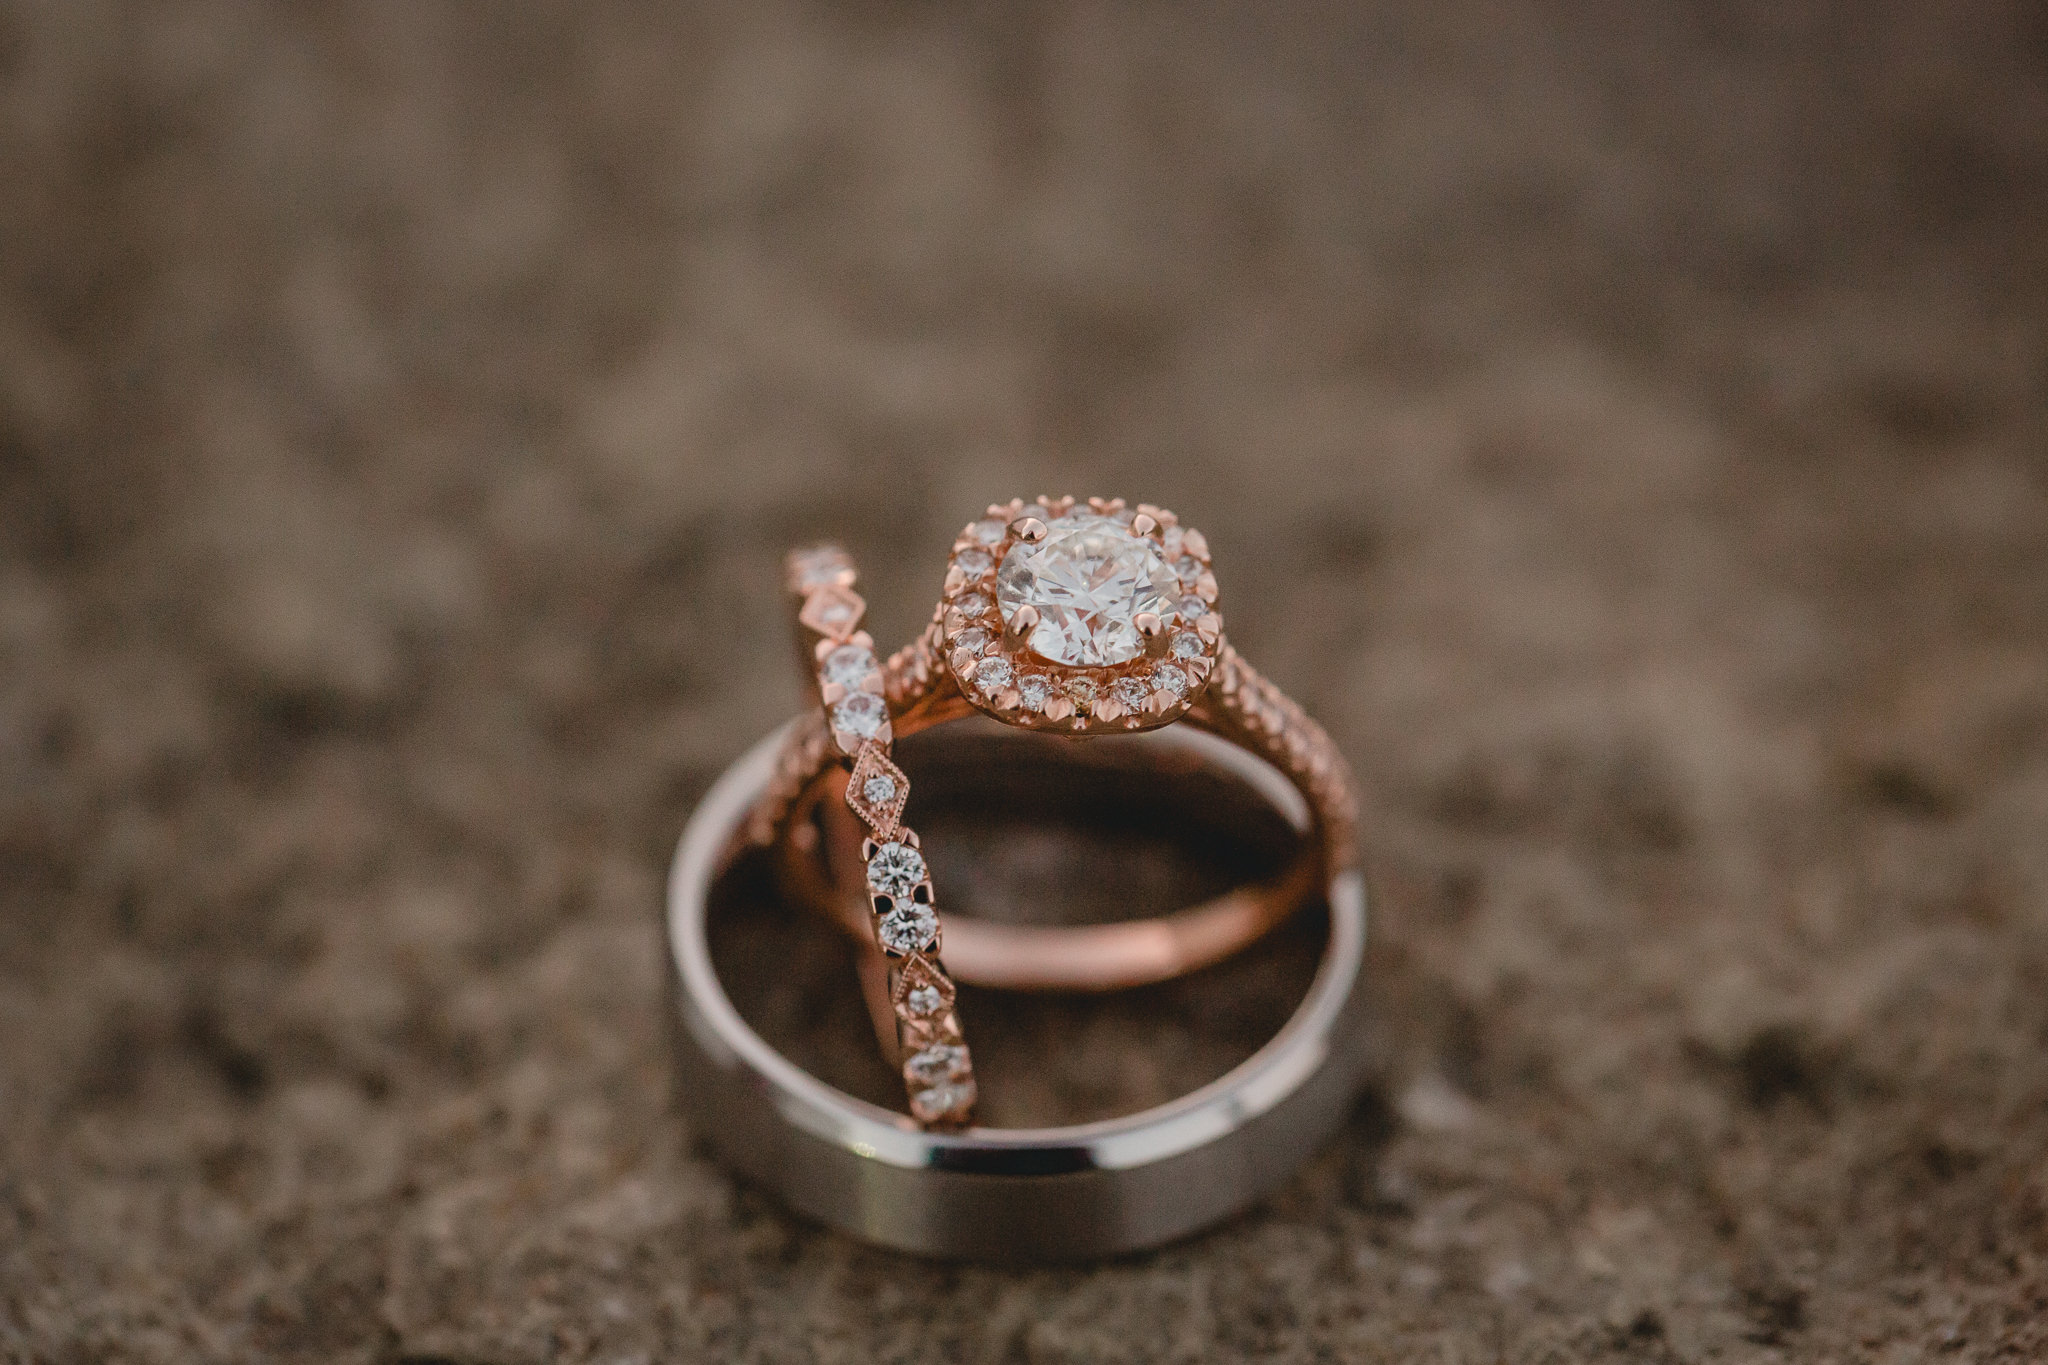 Rose gold and diamond engagement ring and wedding bands at White Barn